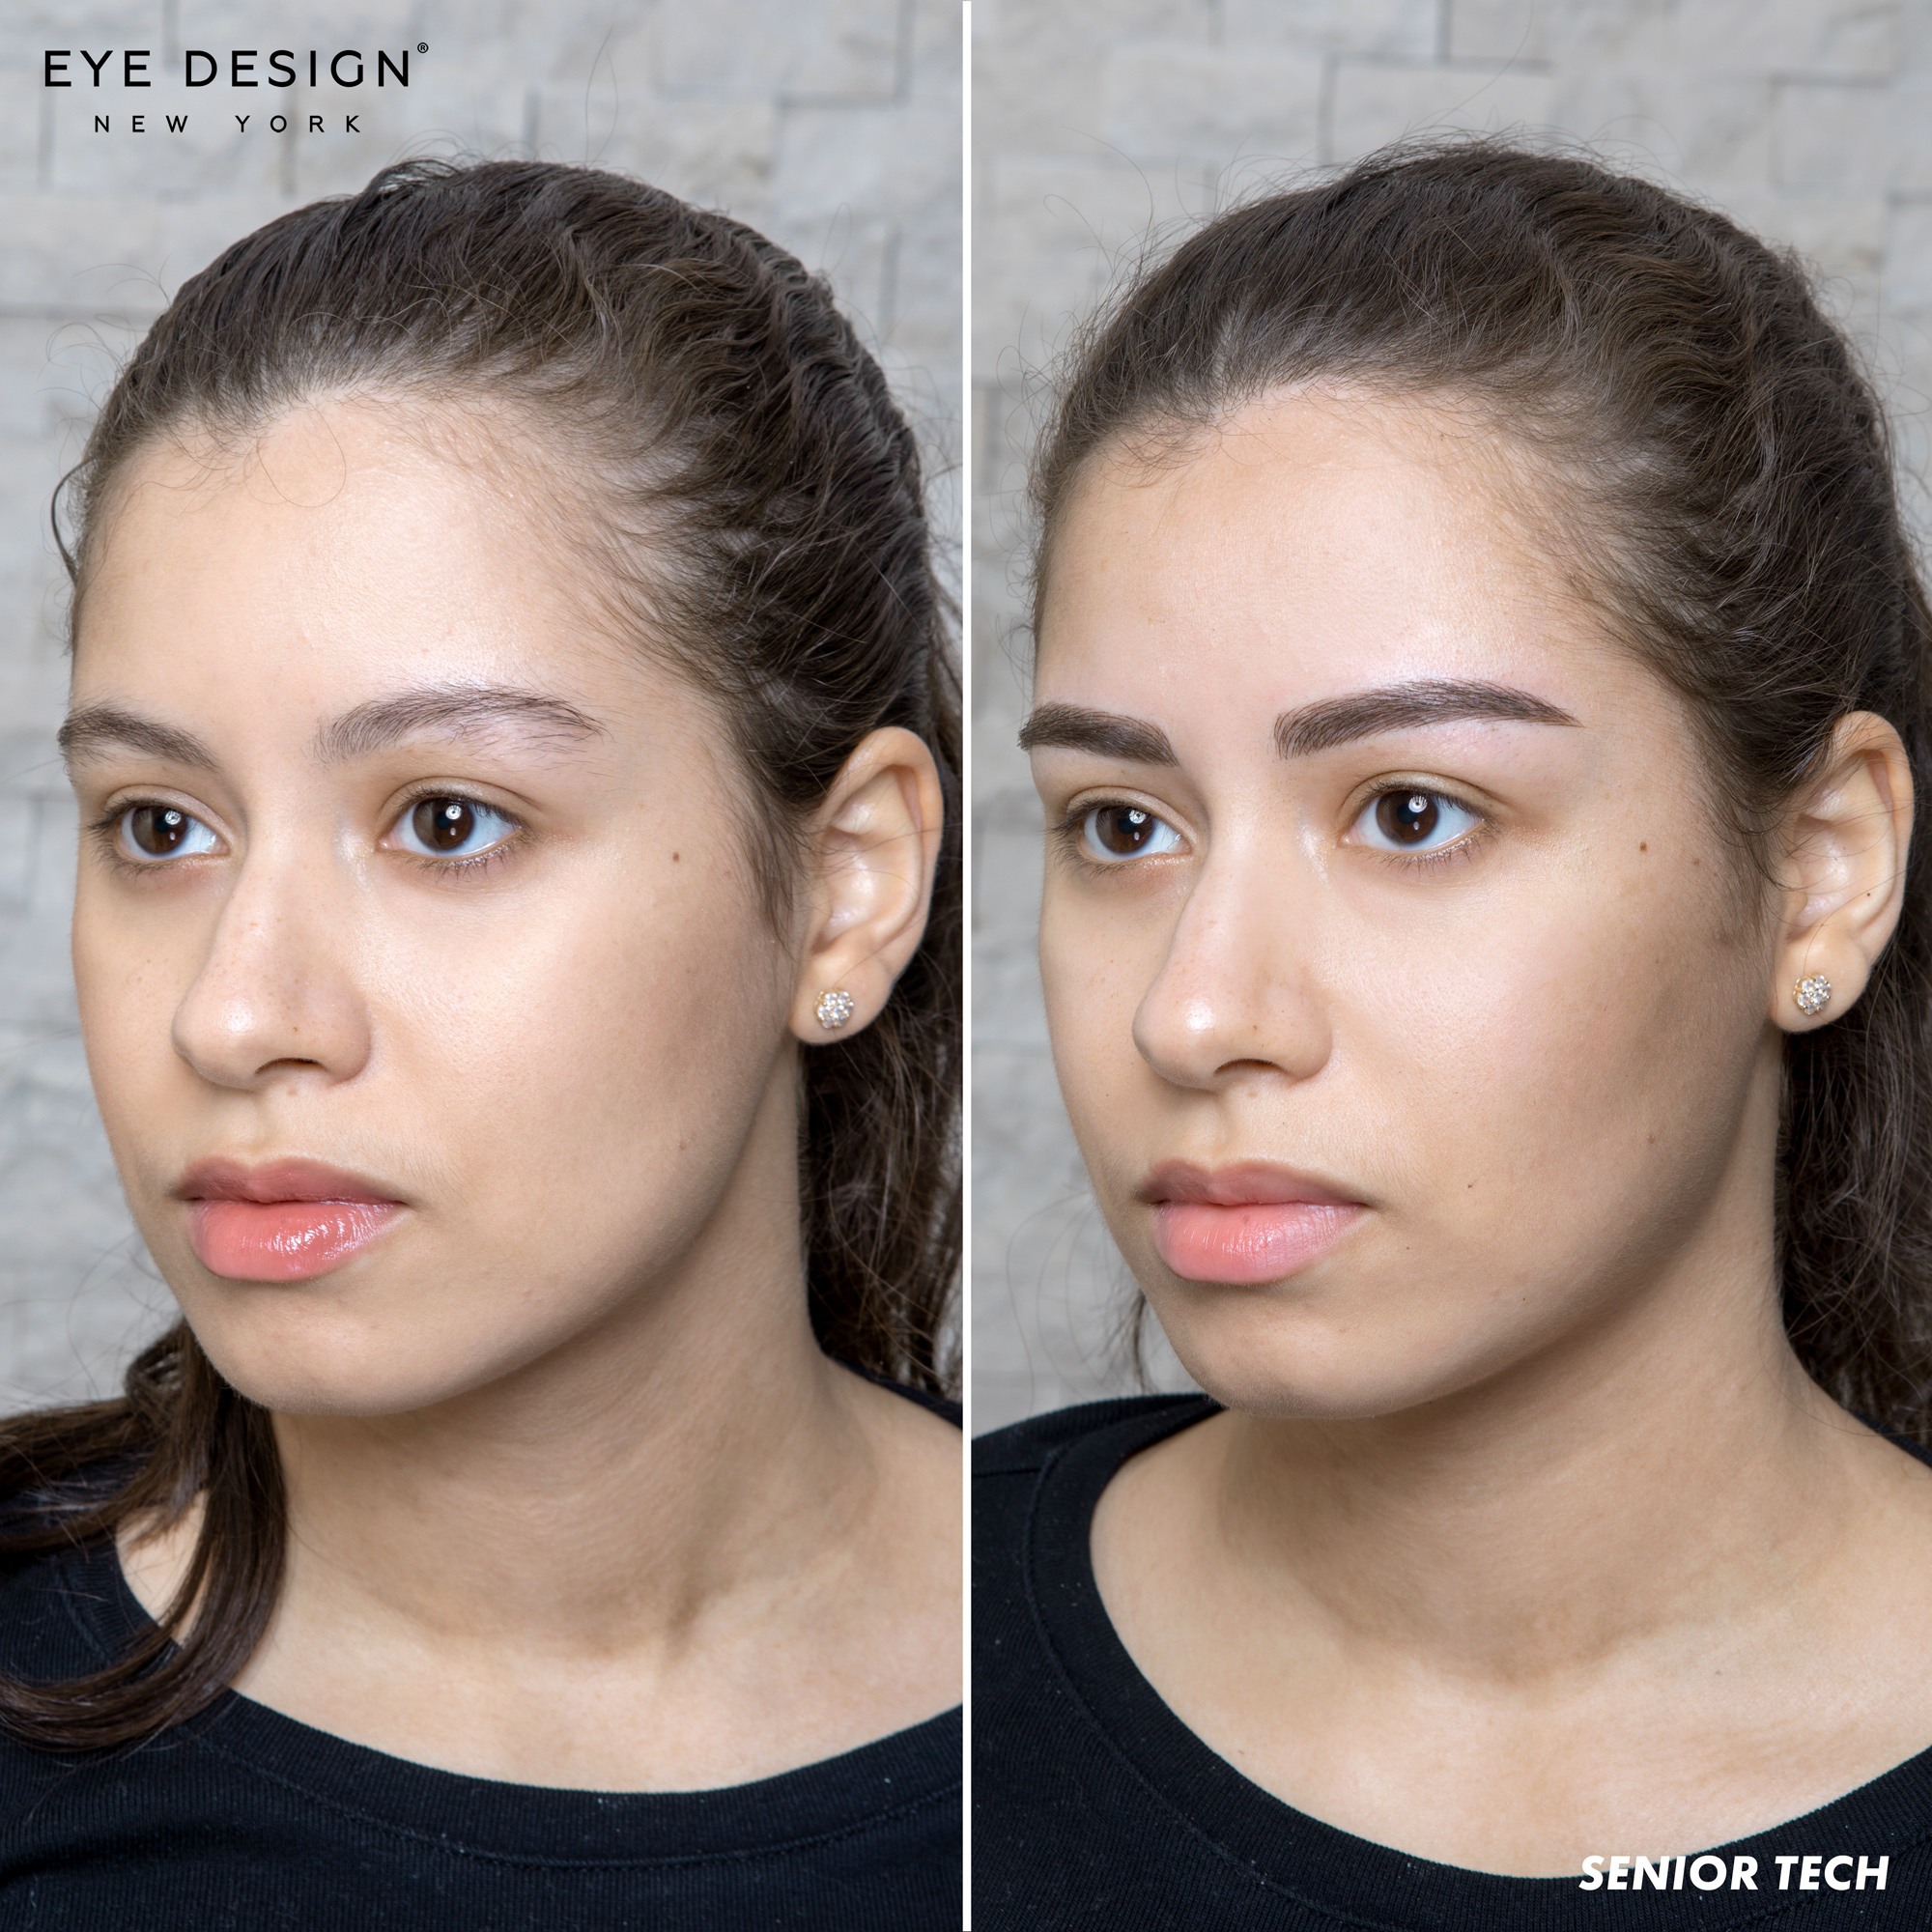 Hybrid technique Eye Design University